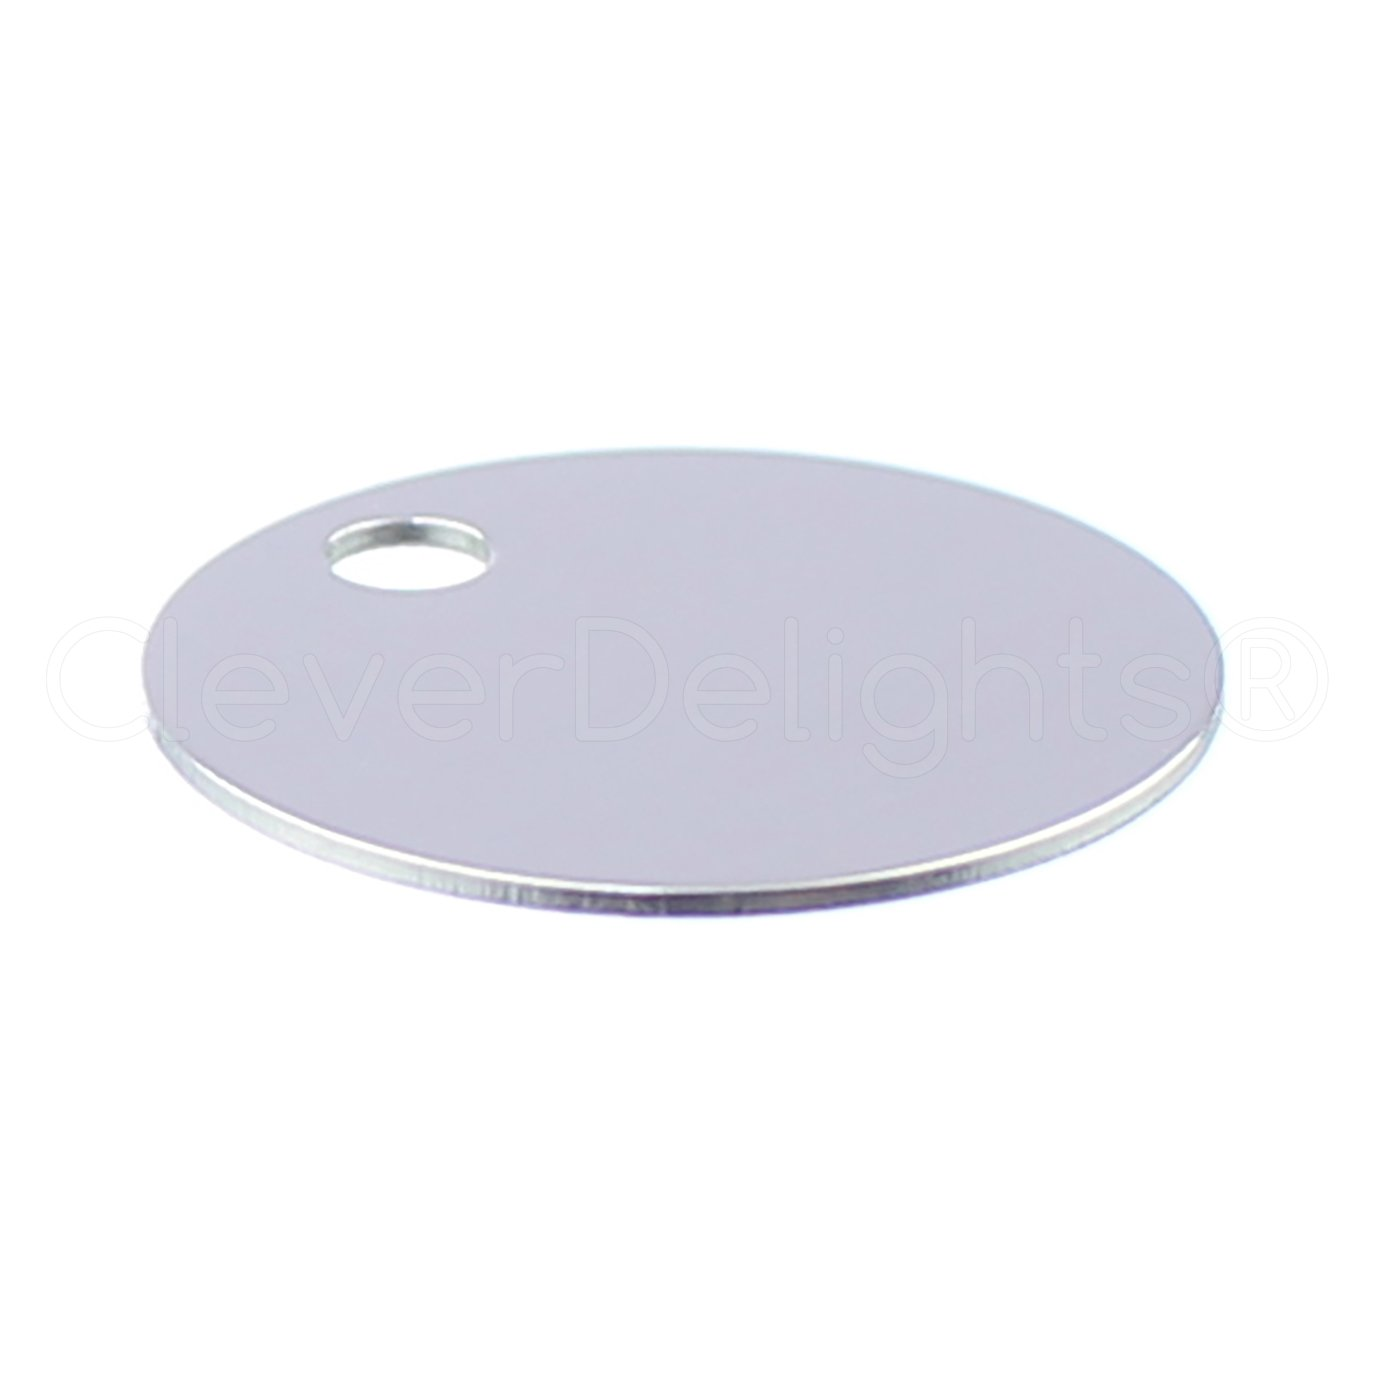 100 Pack - CleverDelights 3/4'' Round Aluminum Stamping Blanks - Shiny Anodized Finish - 22 Gauge (.025'')